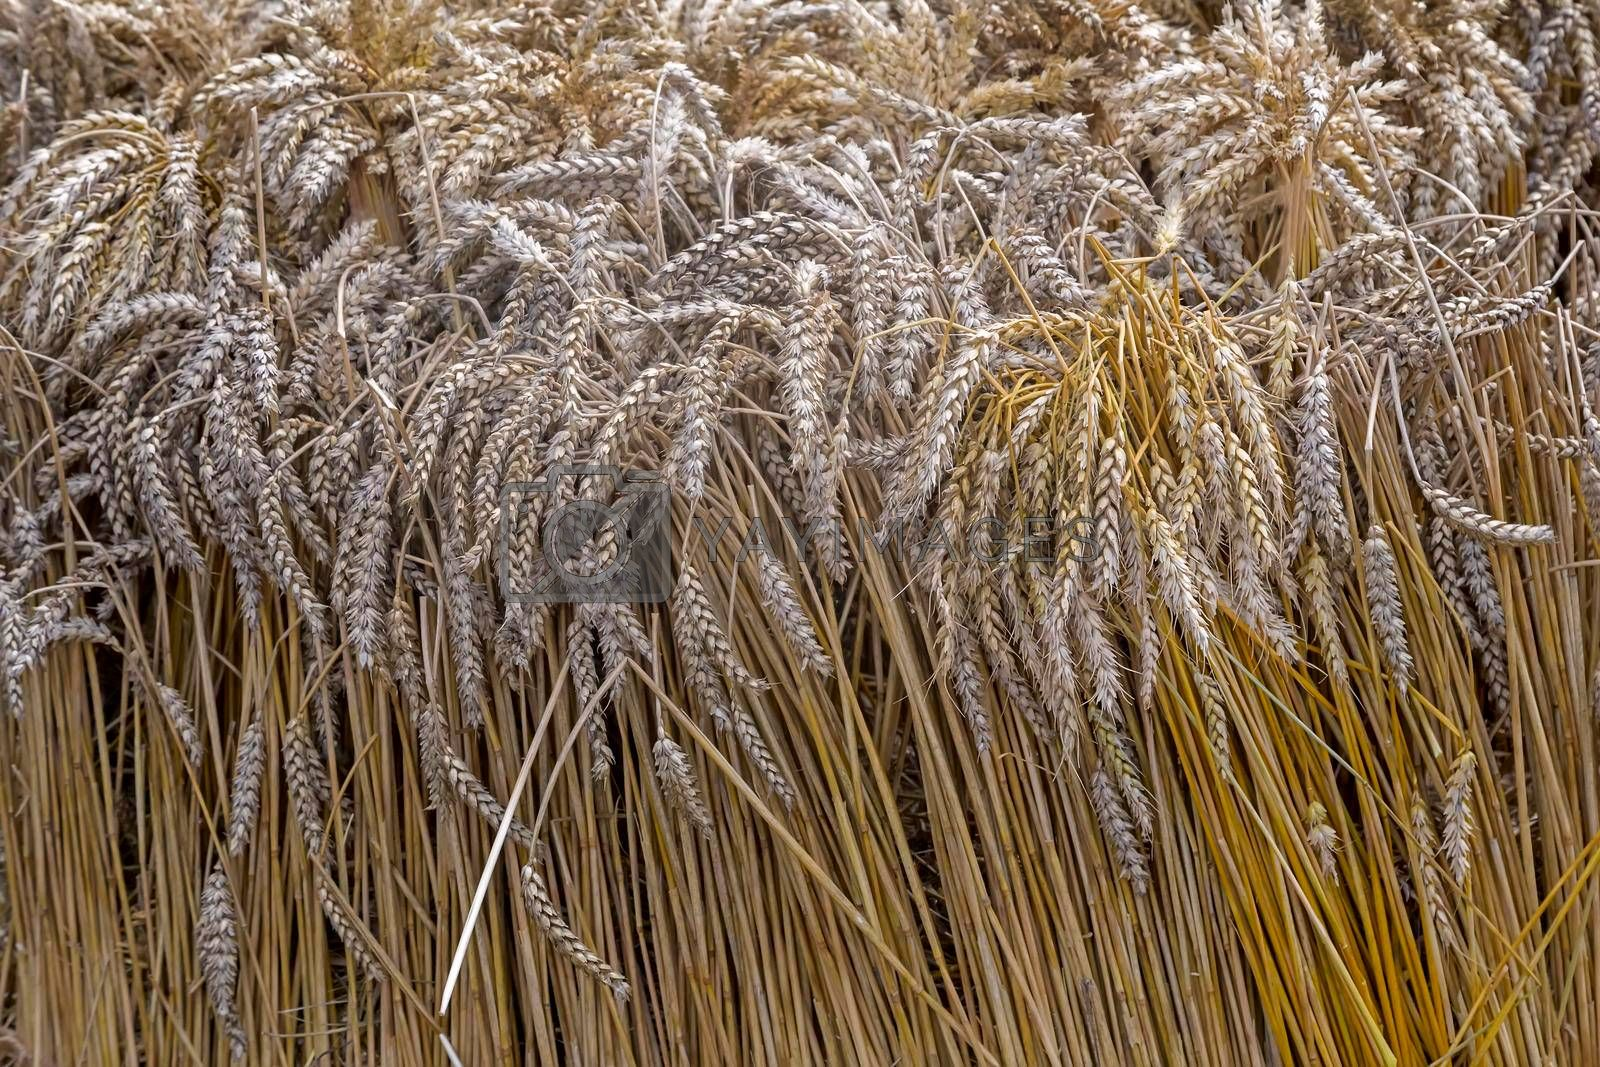 Ears of wheat with a stalk . Presented close-up.